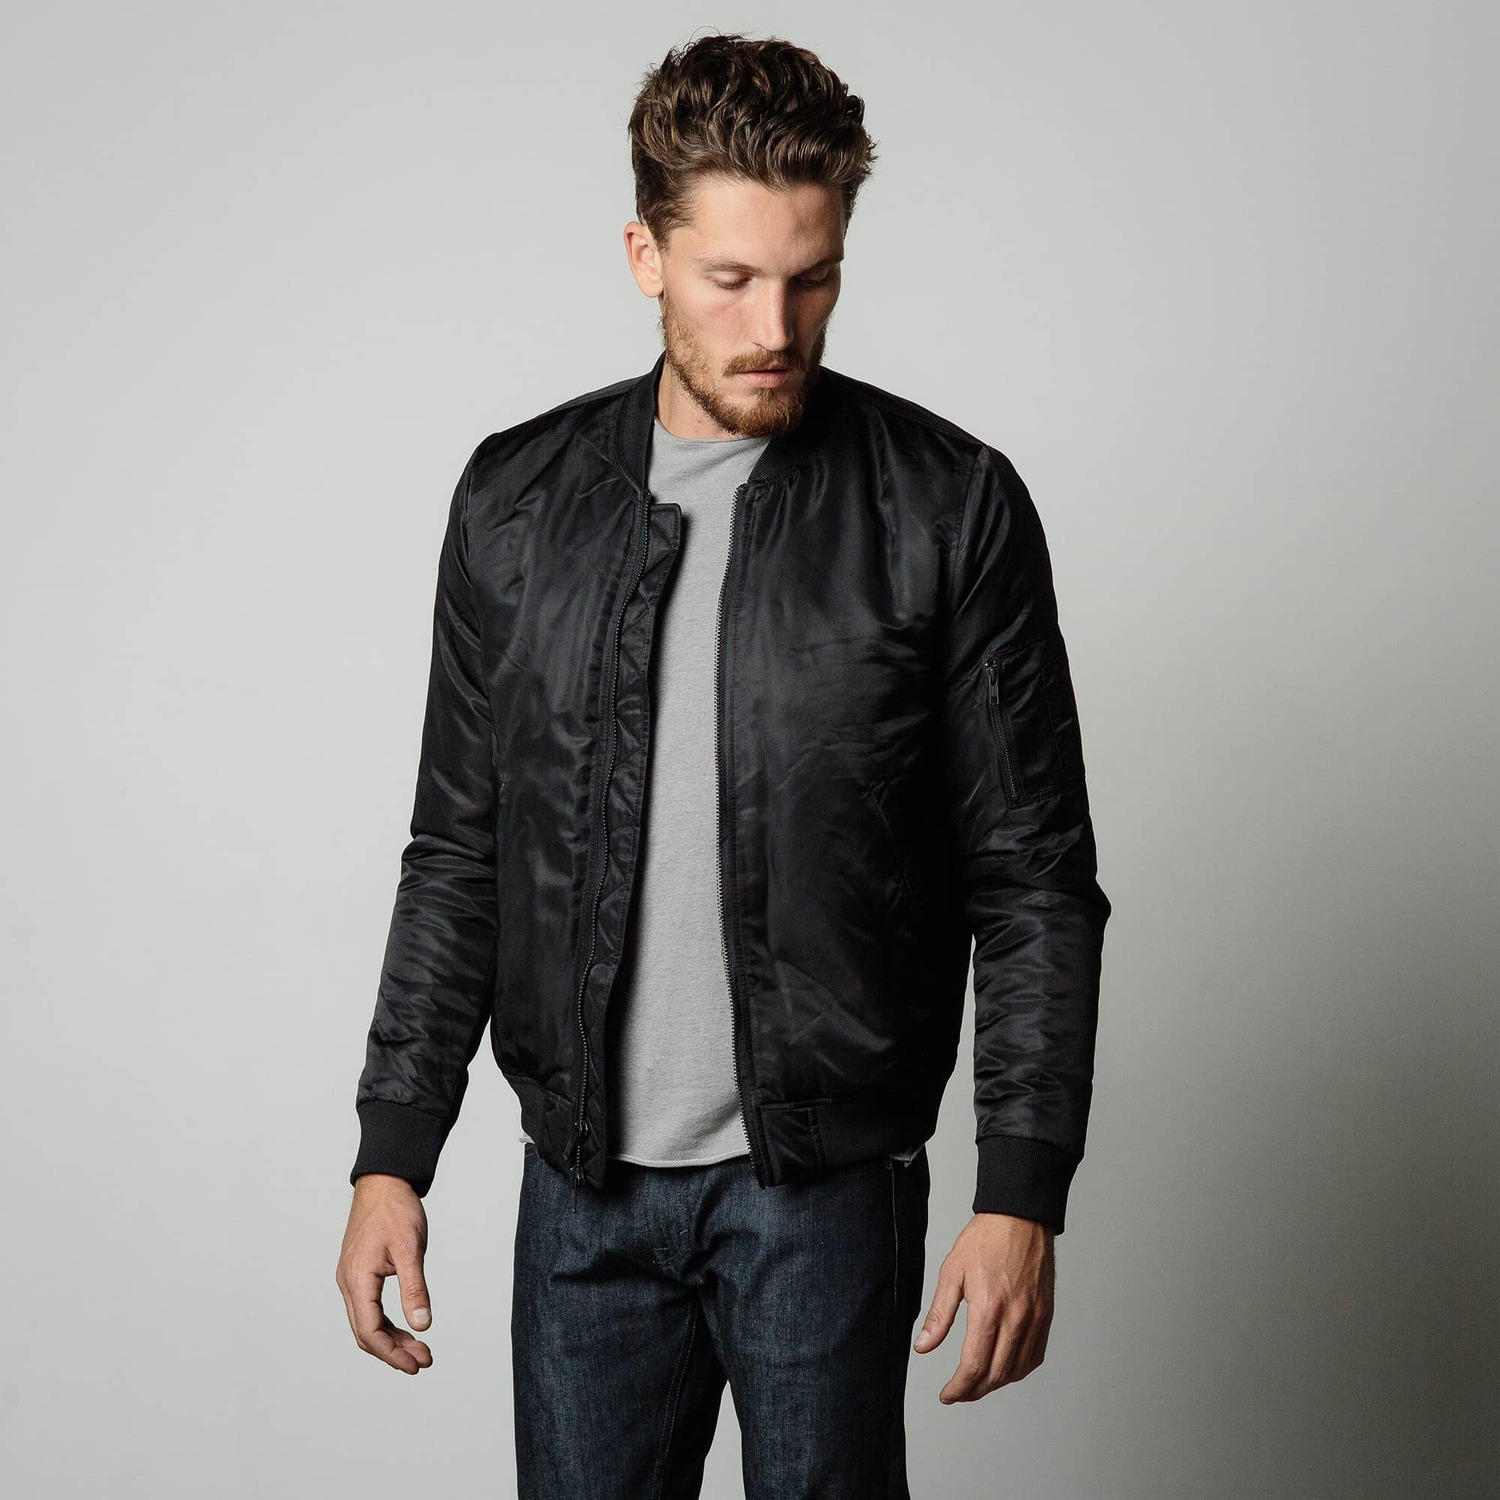 Mens Nylon Bomber Jacket With Black Zippers In Black $125 ...